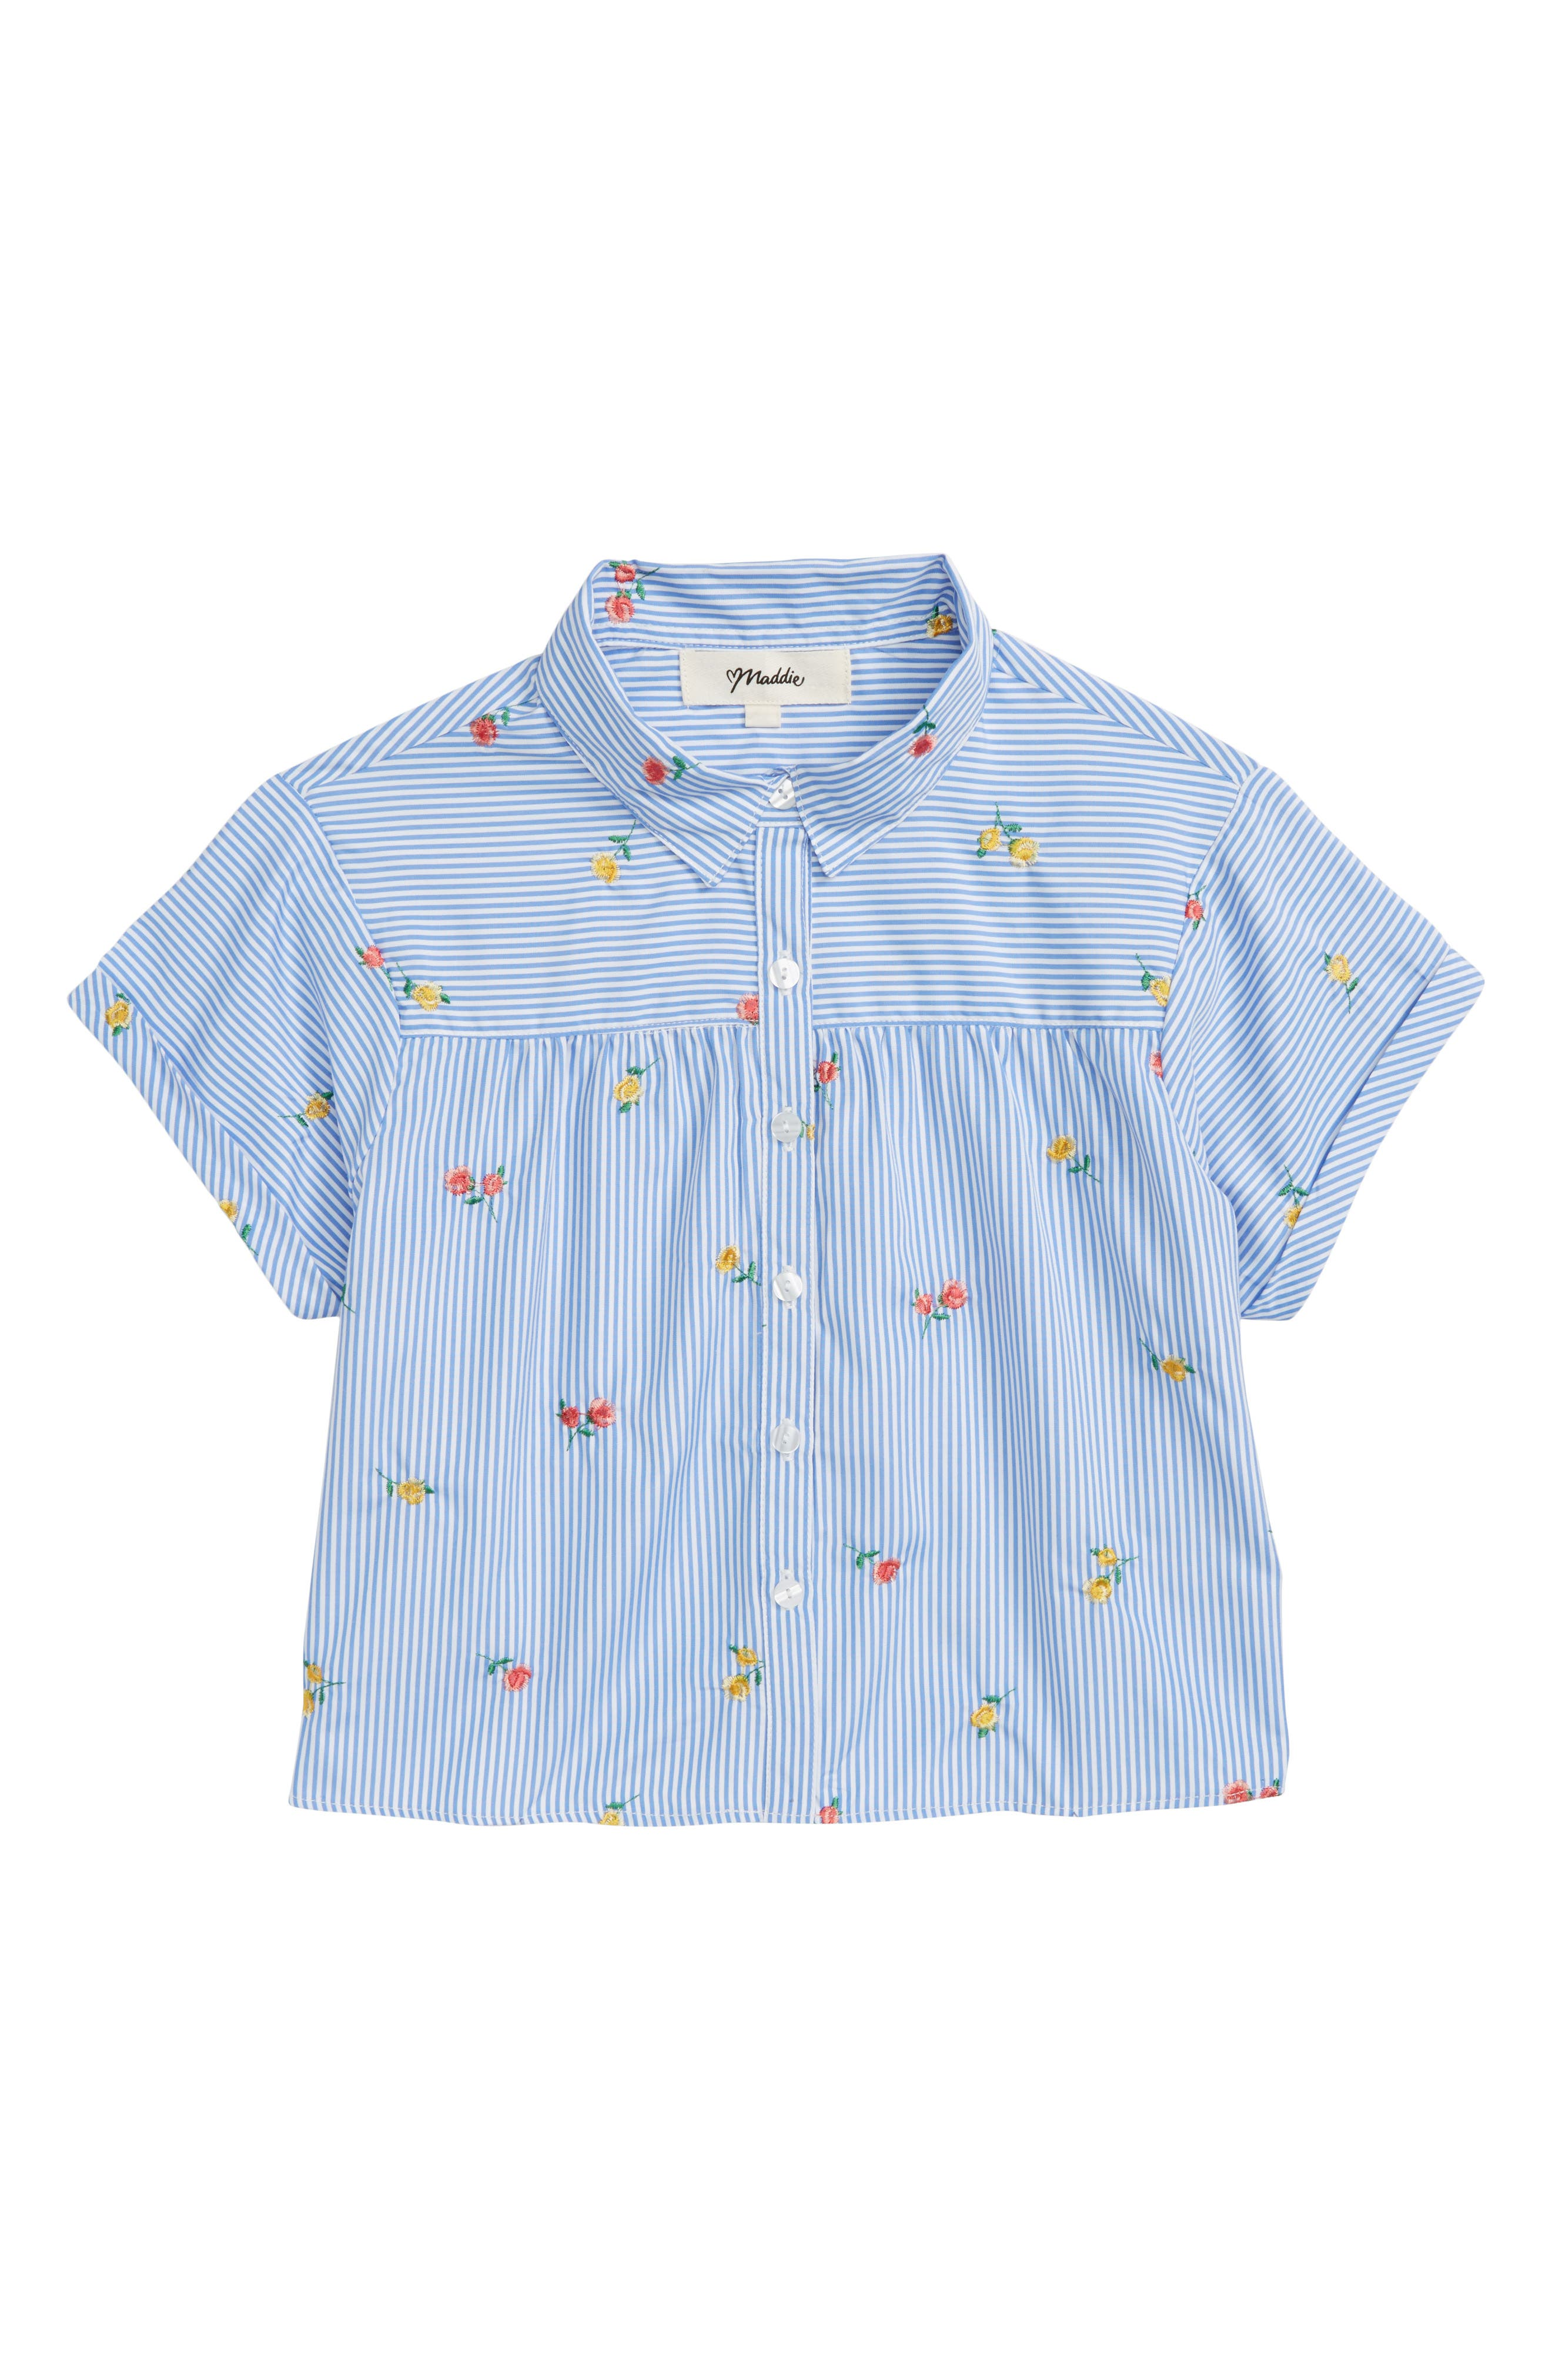 Floral Embroidery Stripe Shirt,                         Main,                         color,